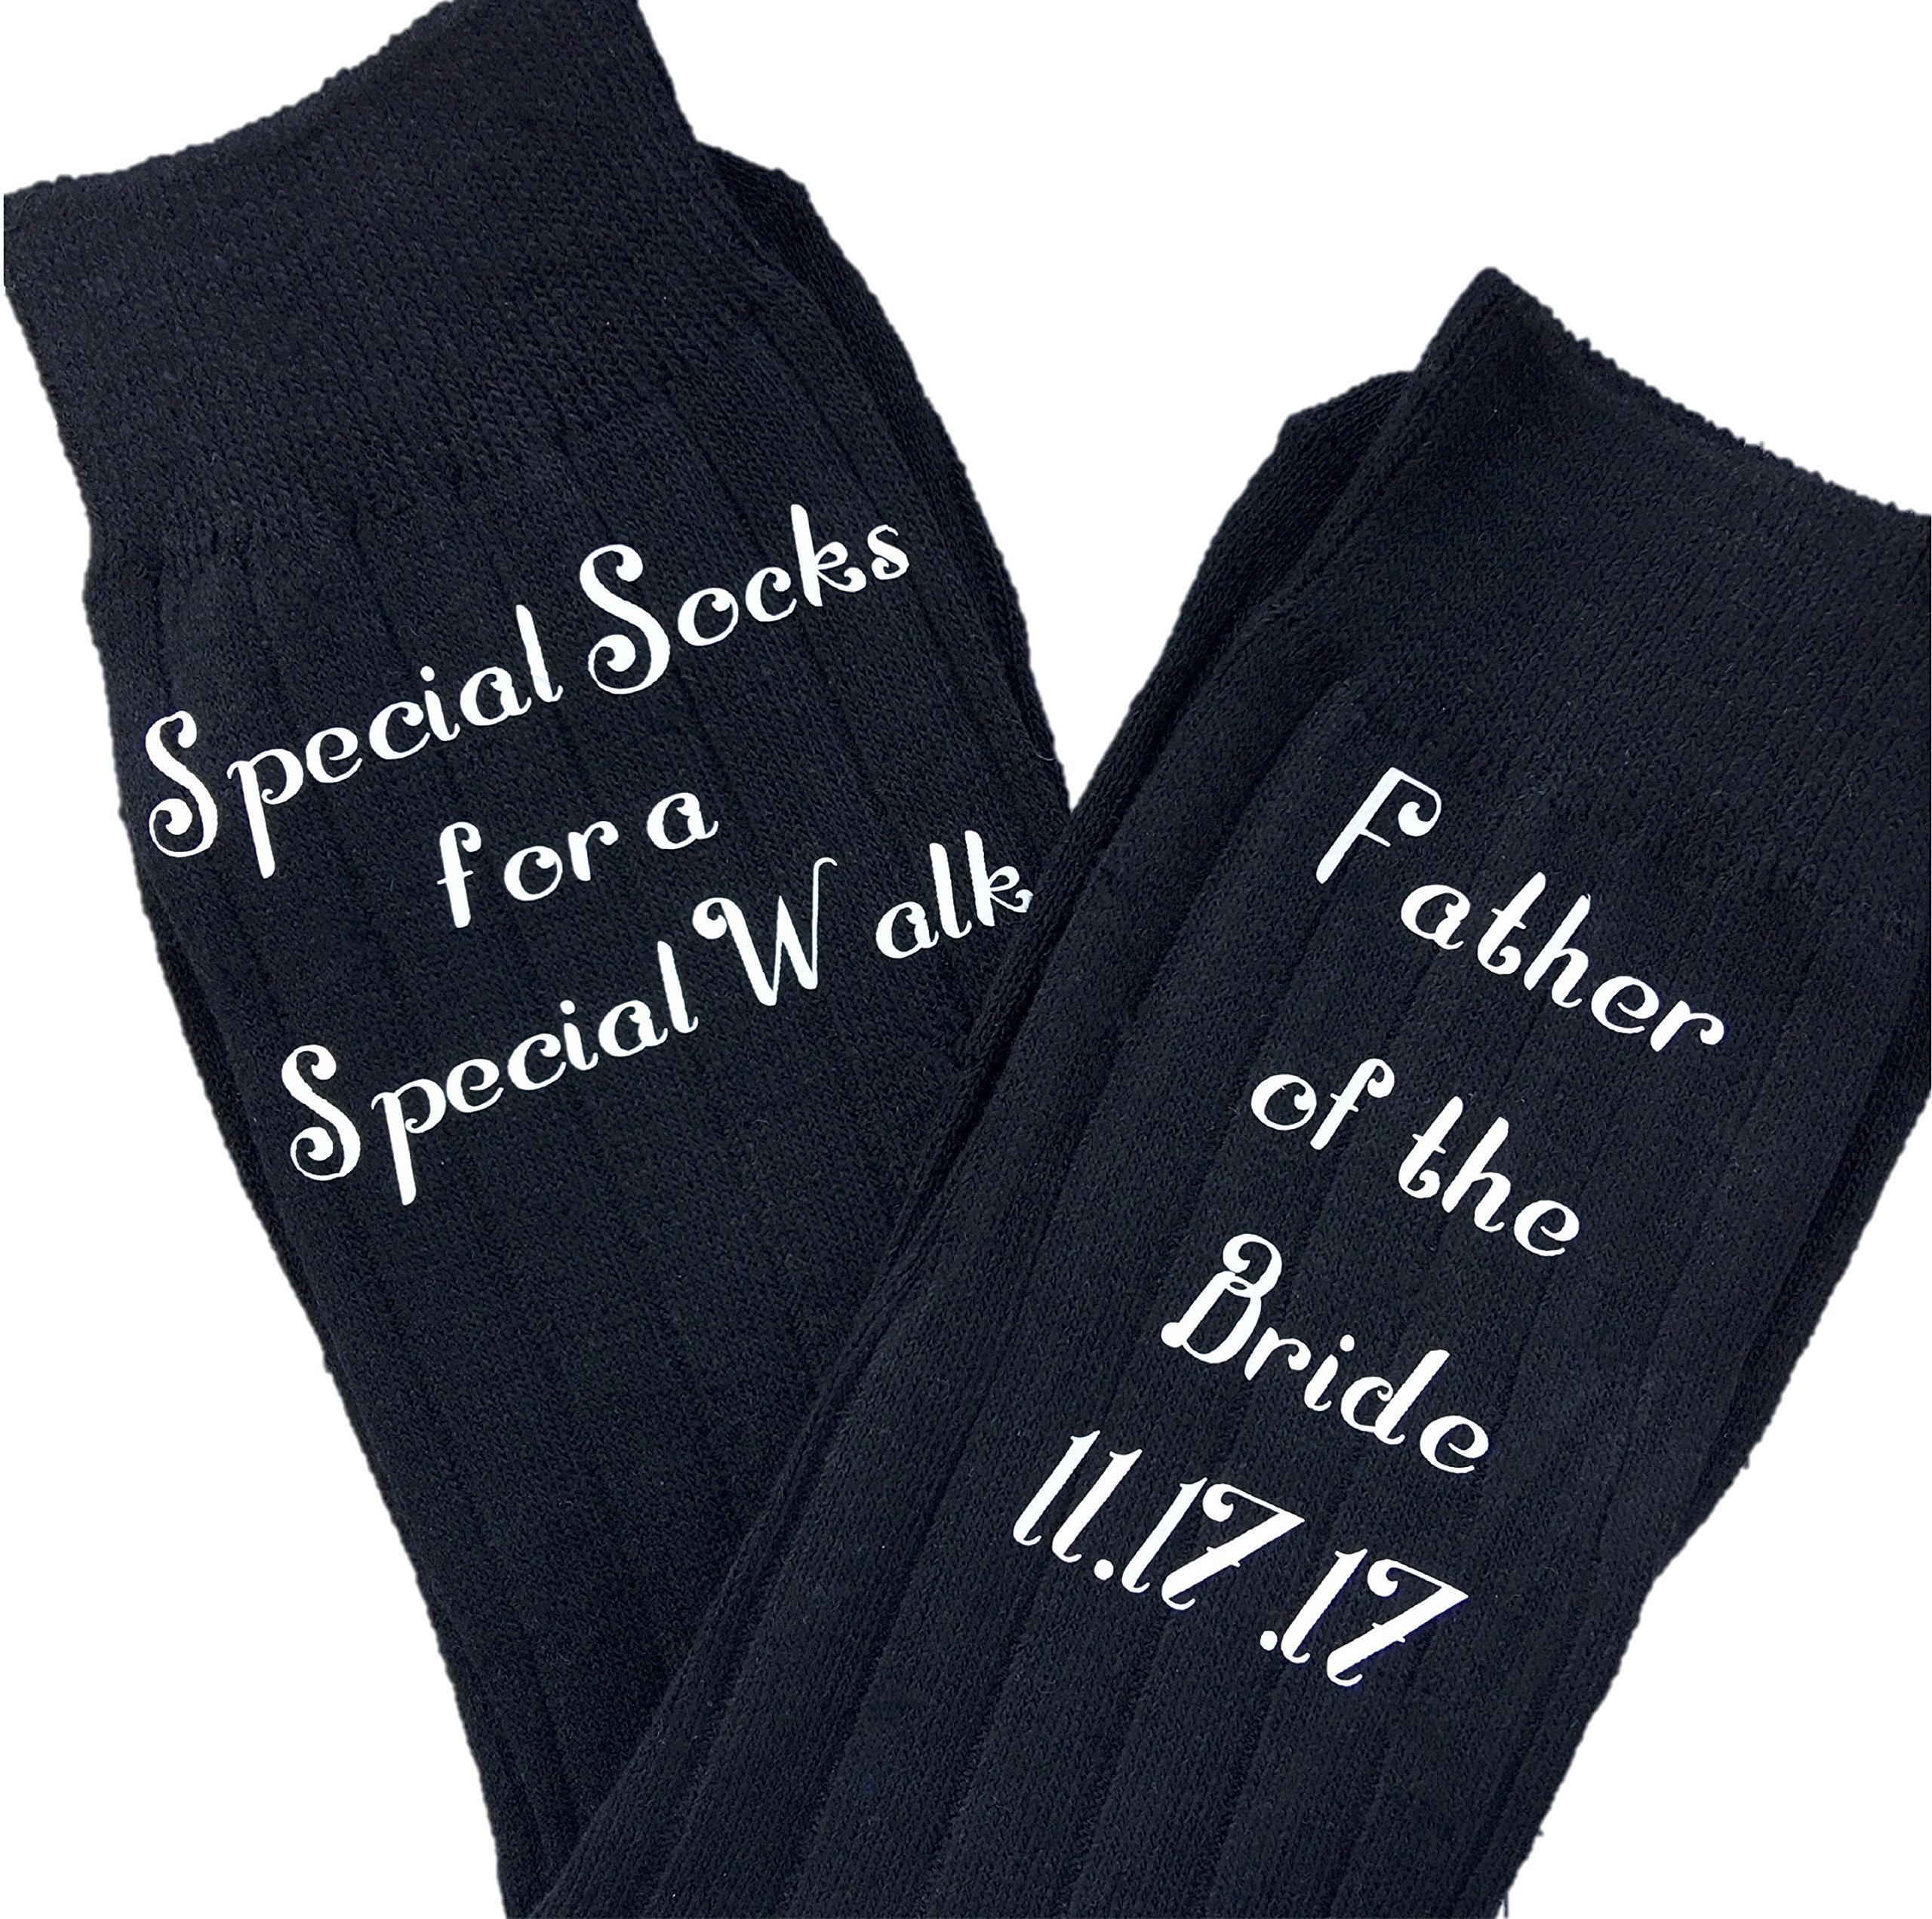 Father of the Bride Socks - Special Socks for a Special Walk - Gift for the Father of the Bride